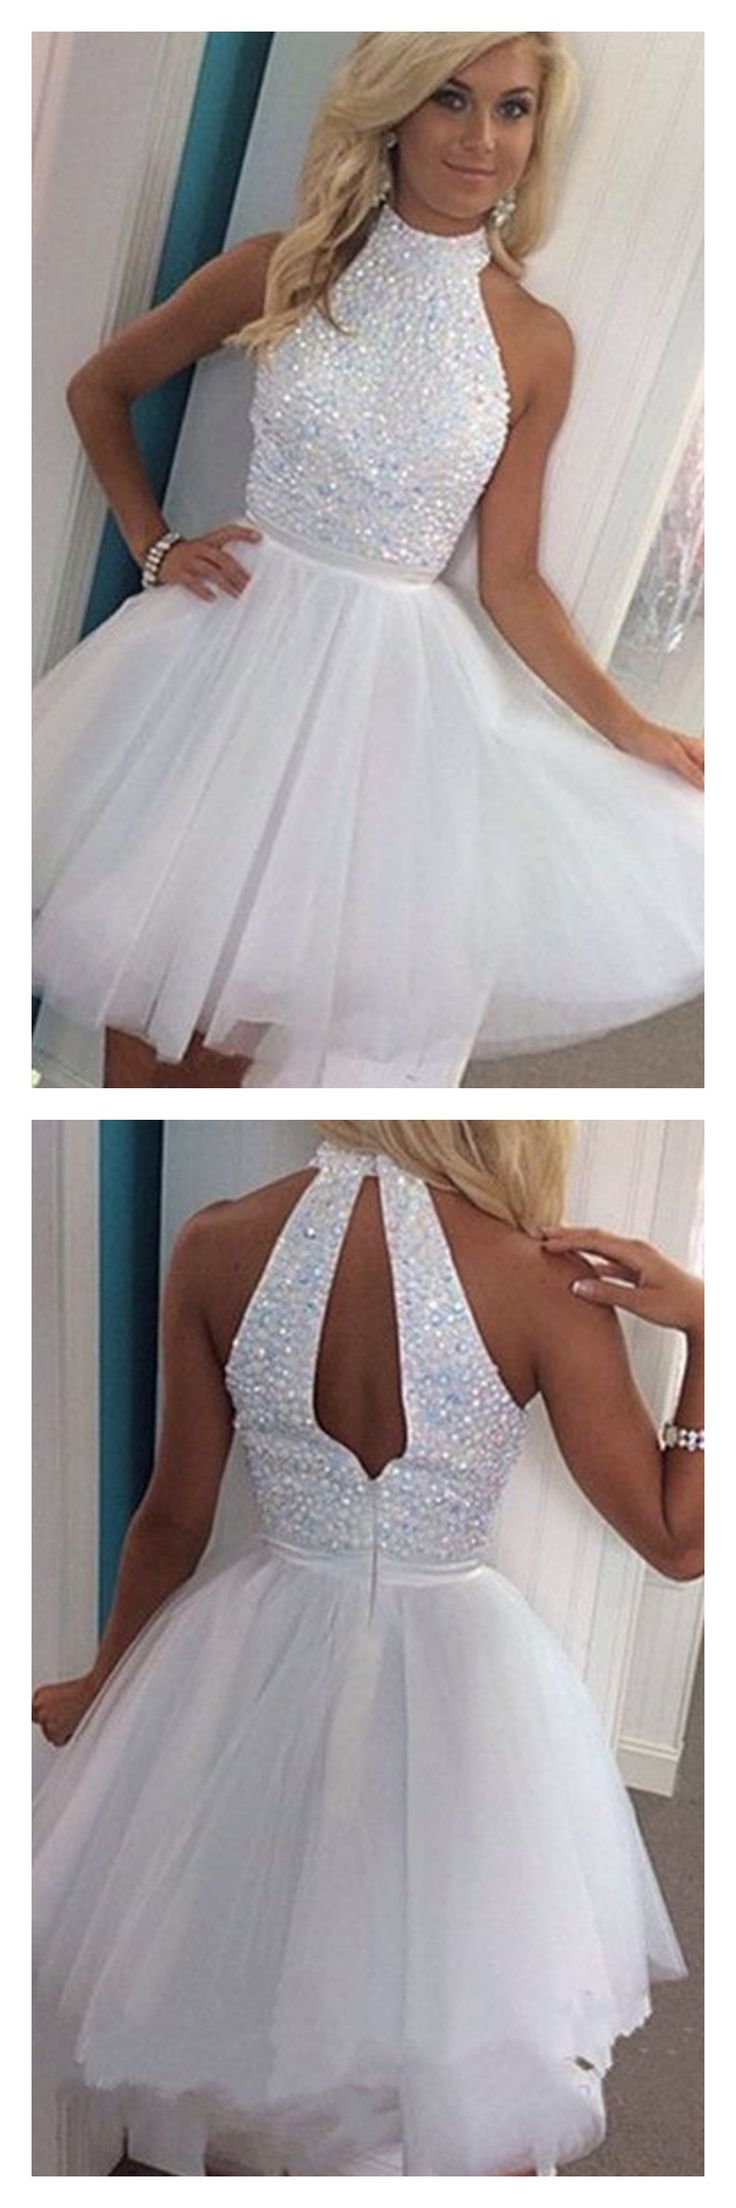 2017 white homecoming dresses, open back halter party dresses, beading short prom dresses graduation dresses #SIMIBridal